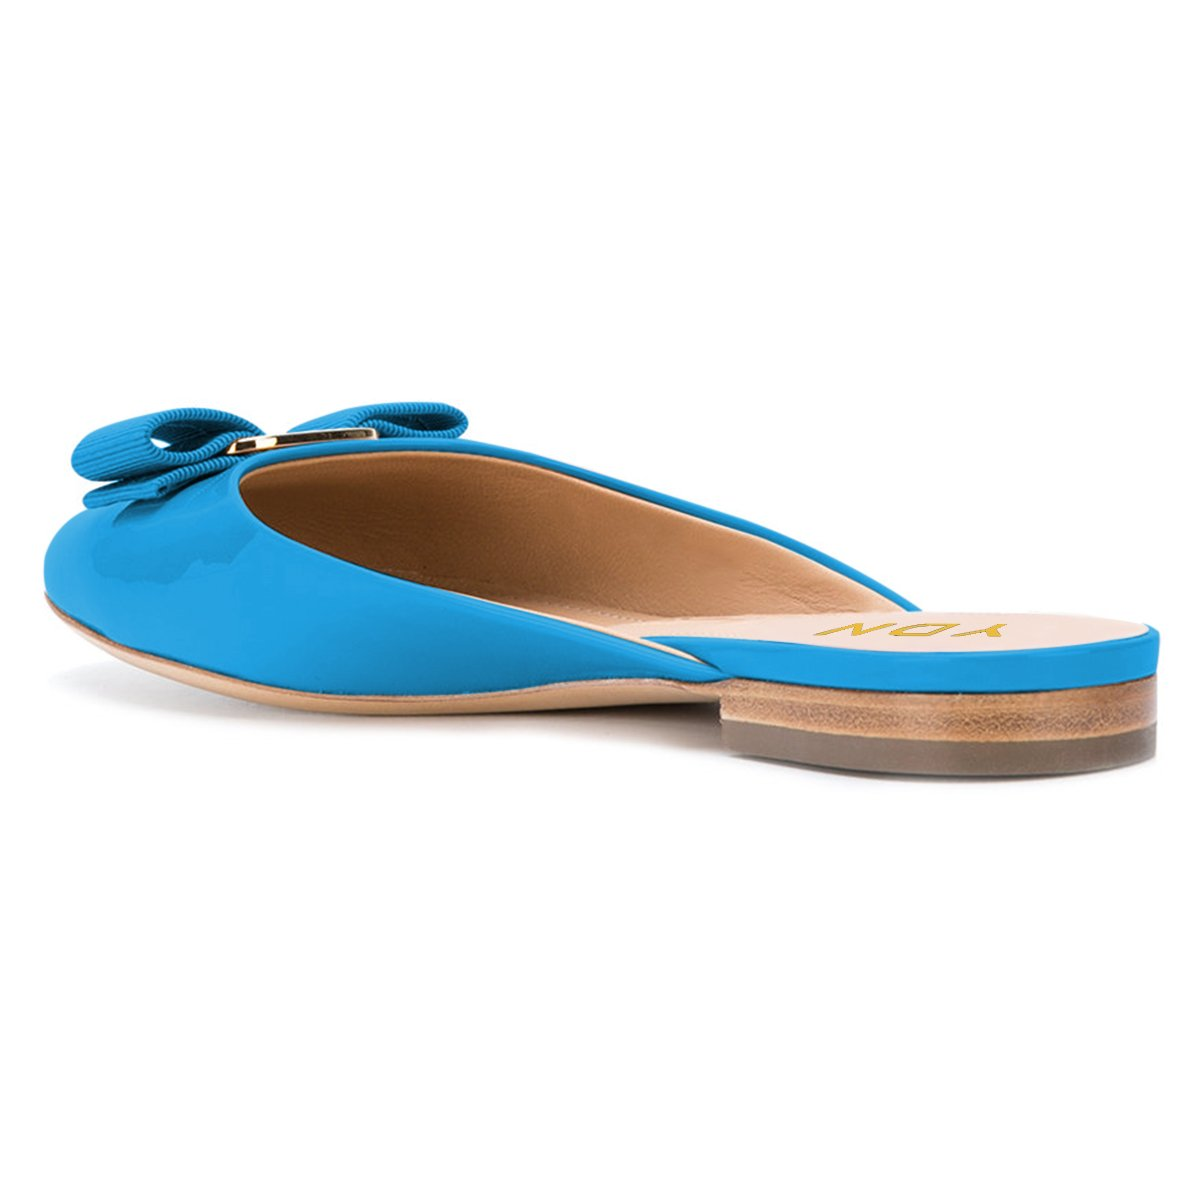 YDN Women Round Toe Low Heel Flats Slip on Bowknot Slippers Summer Slide Clog Shoes Blue 11 by YDN (Image #3)